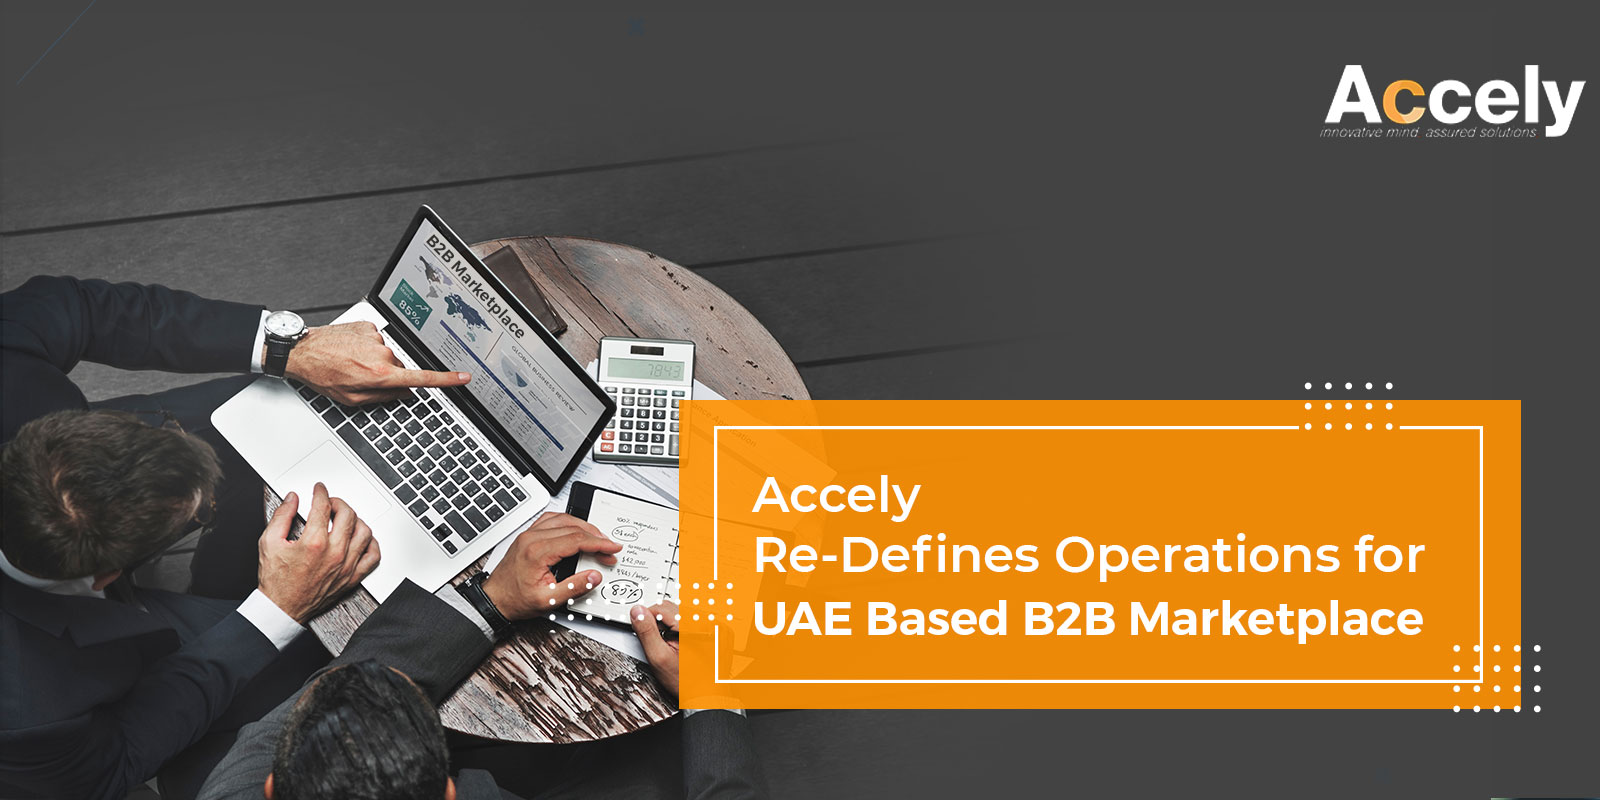 Accely re-defines operations for UAE based B2B Marketplace